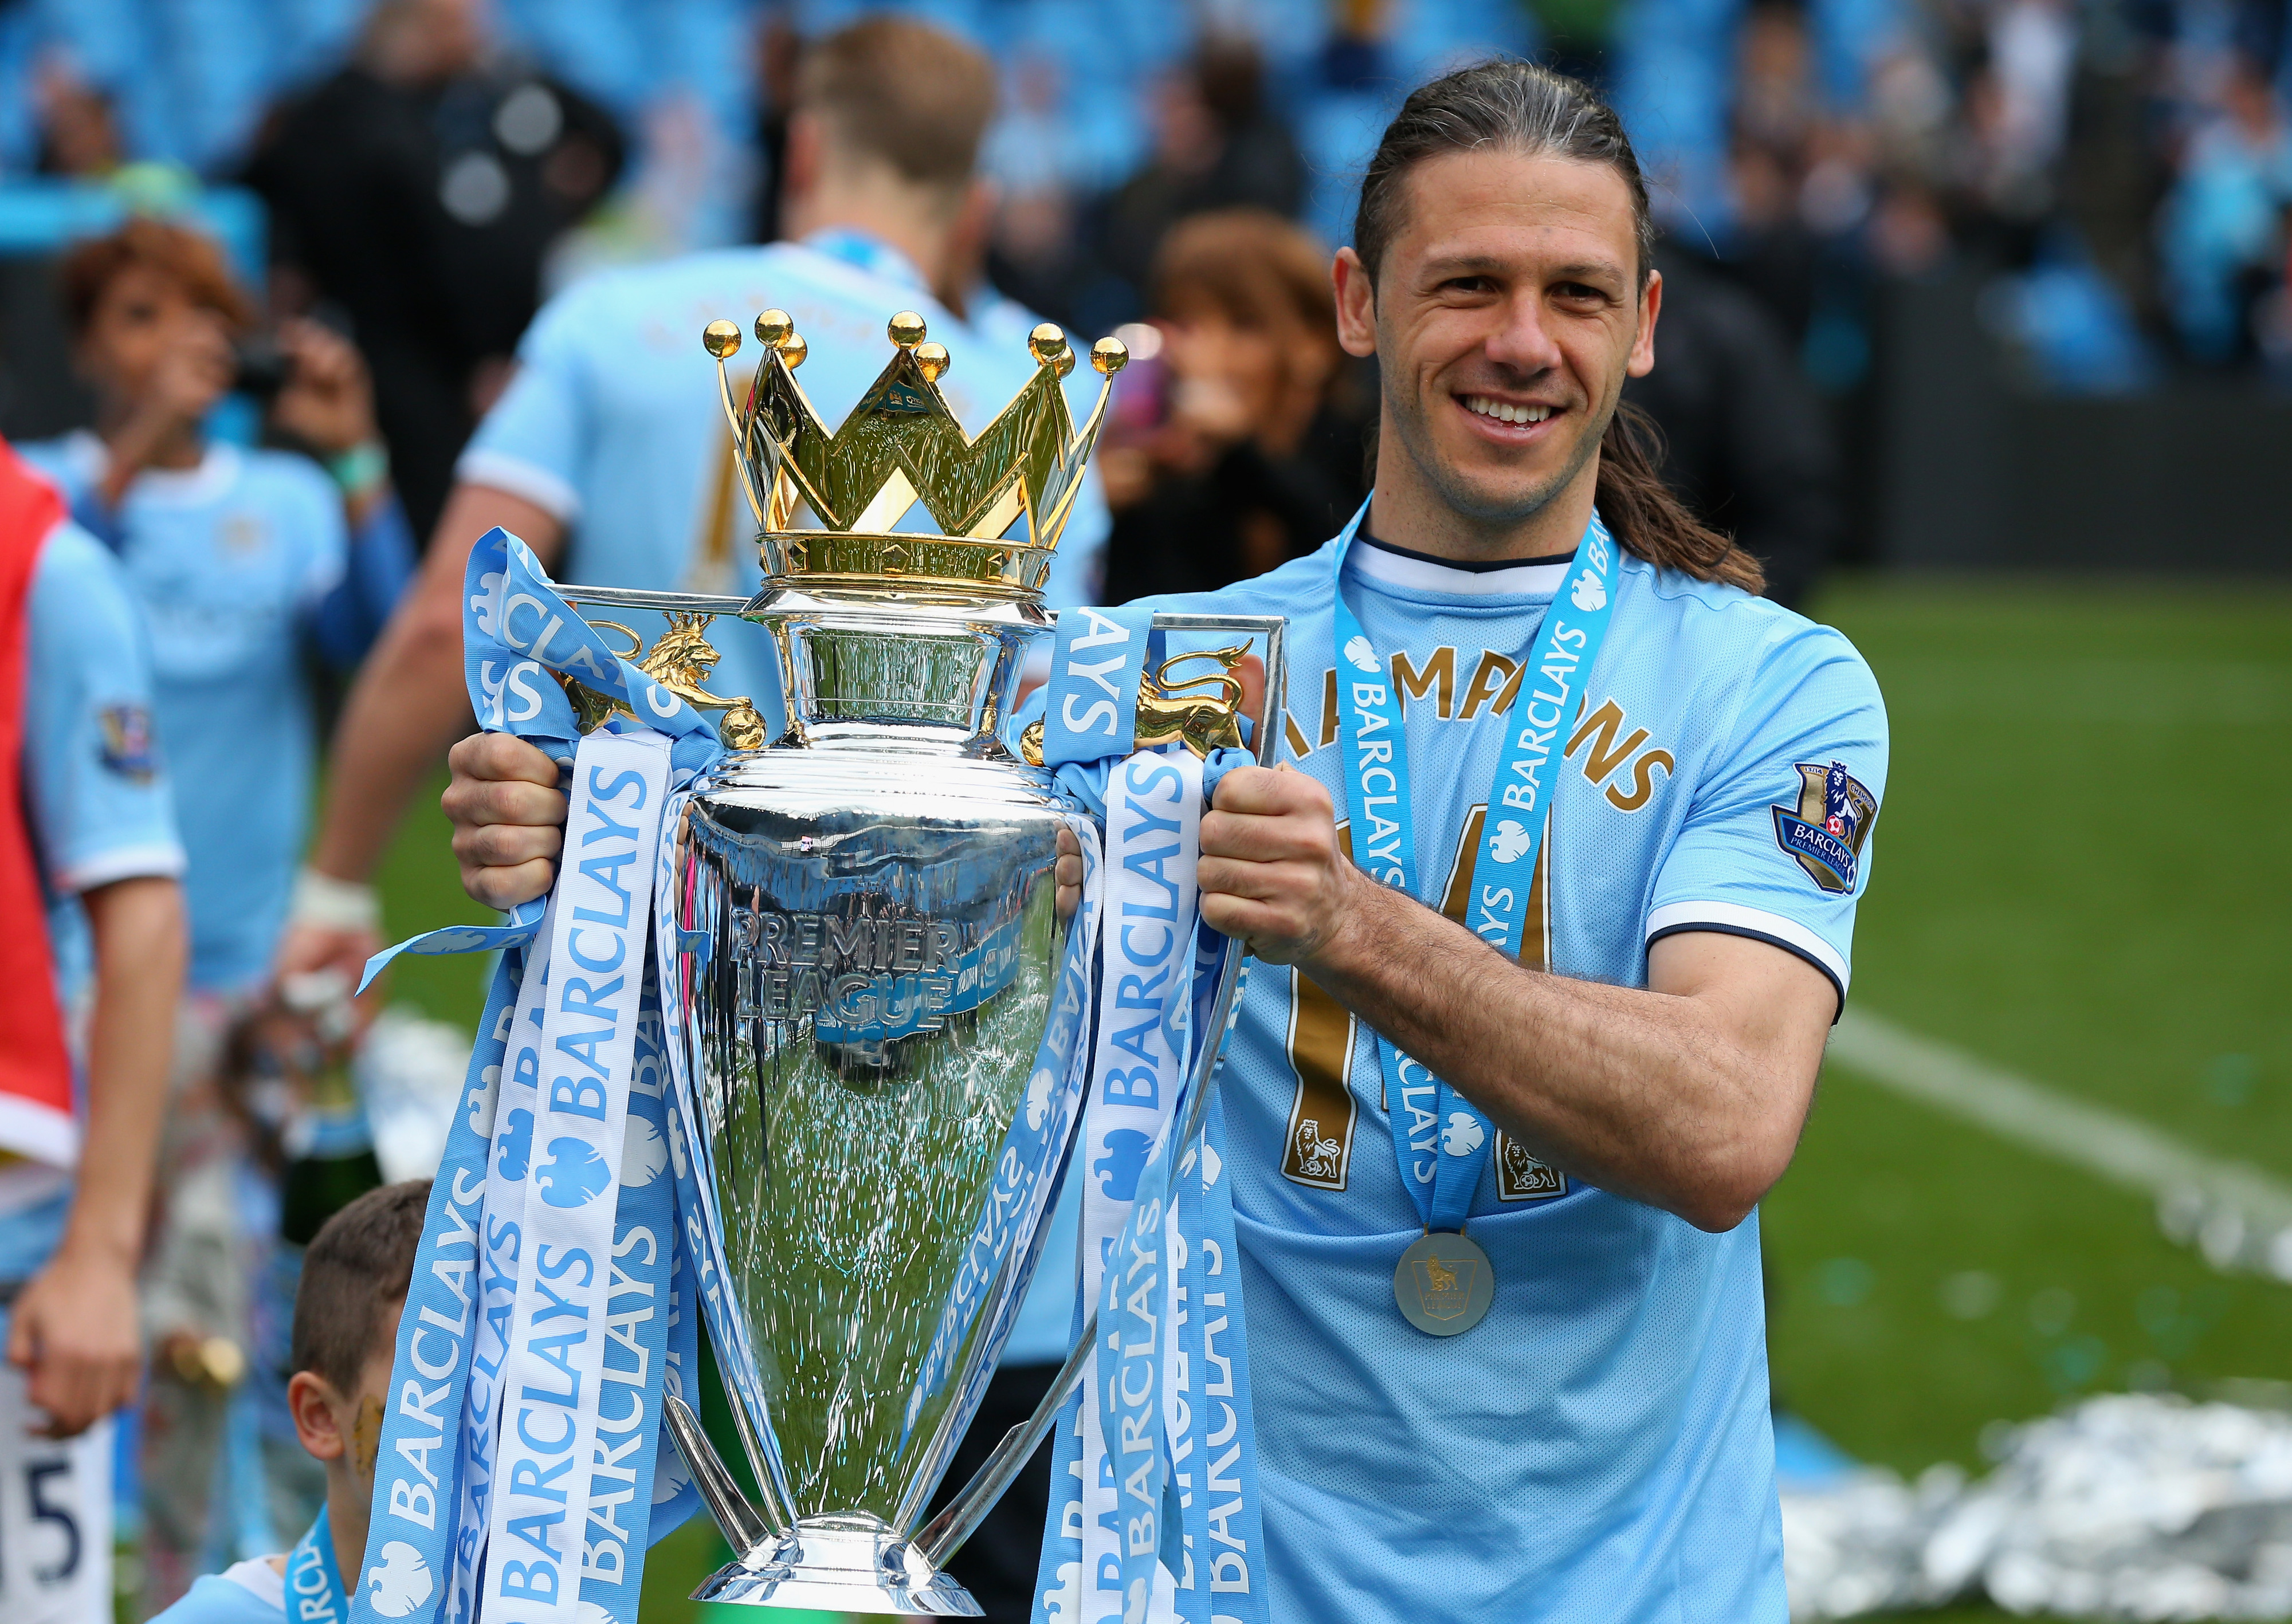 Champion: Martin Demichelis lifts the EPL trophy